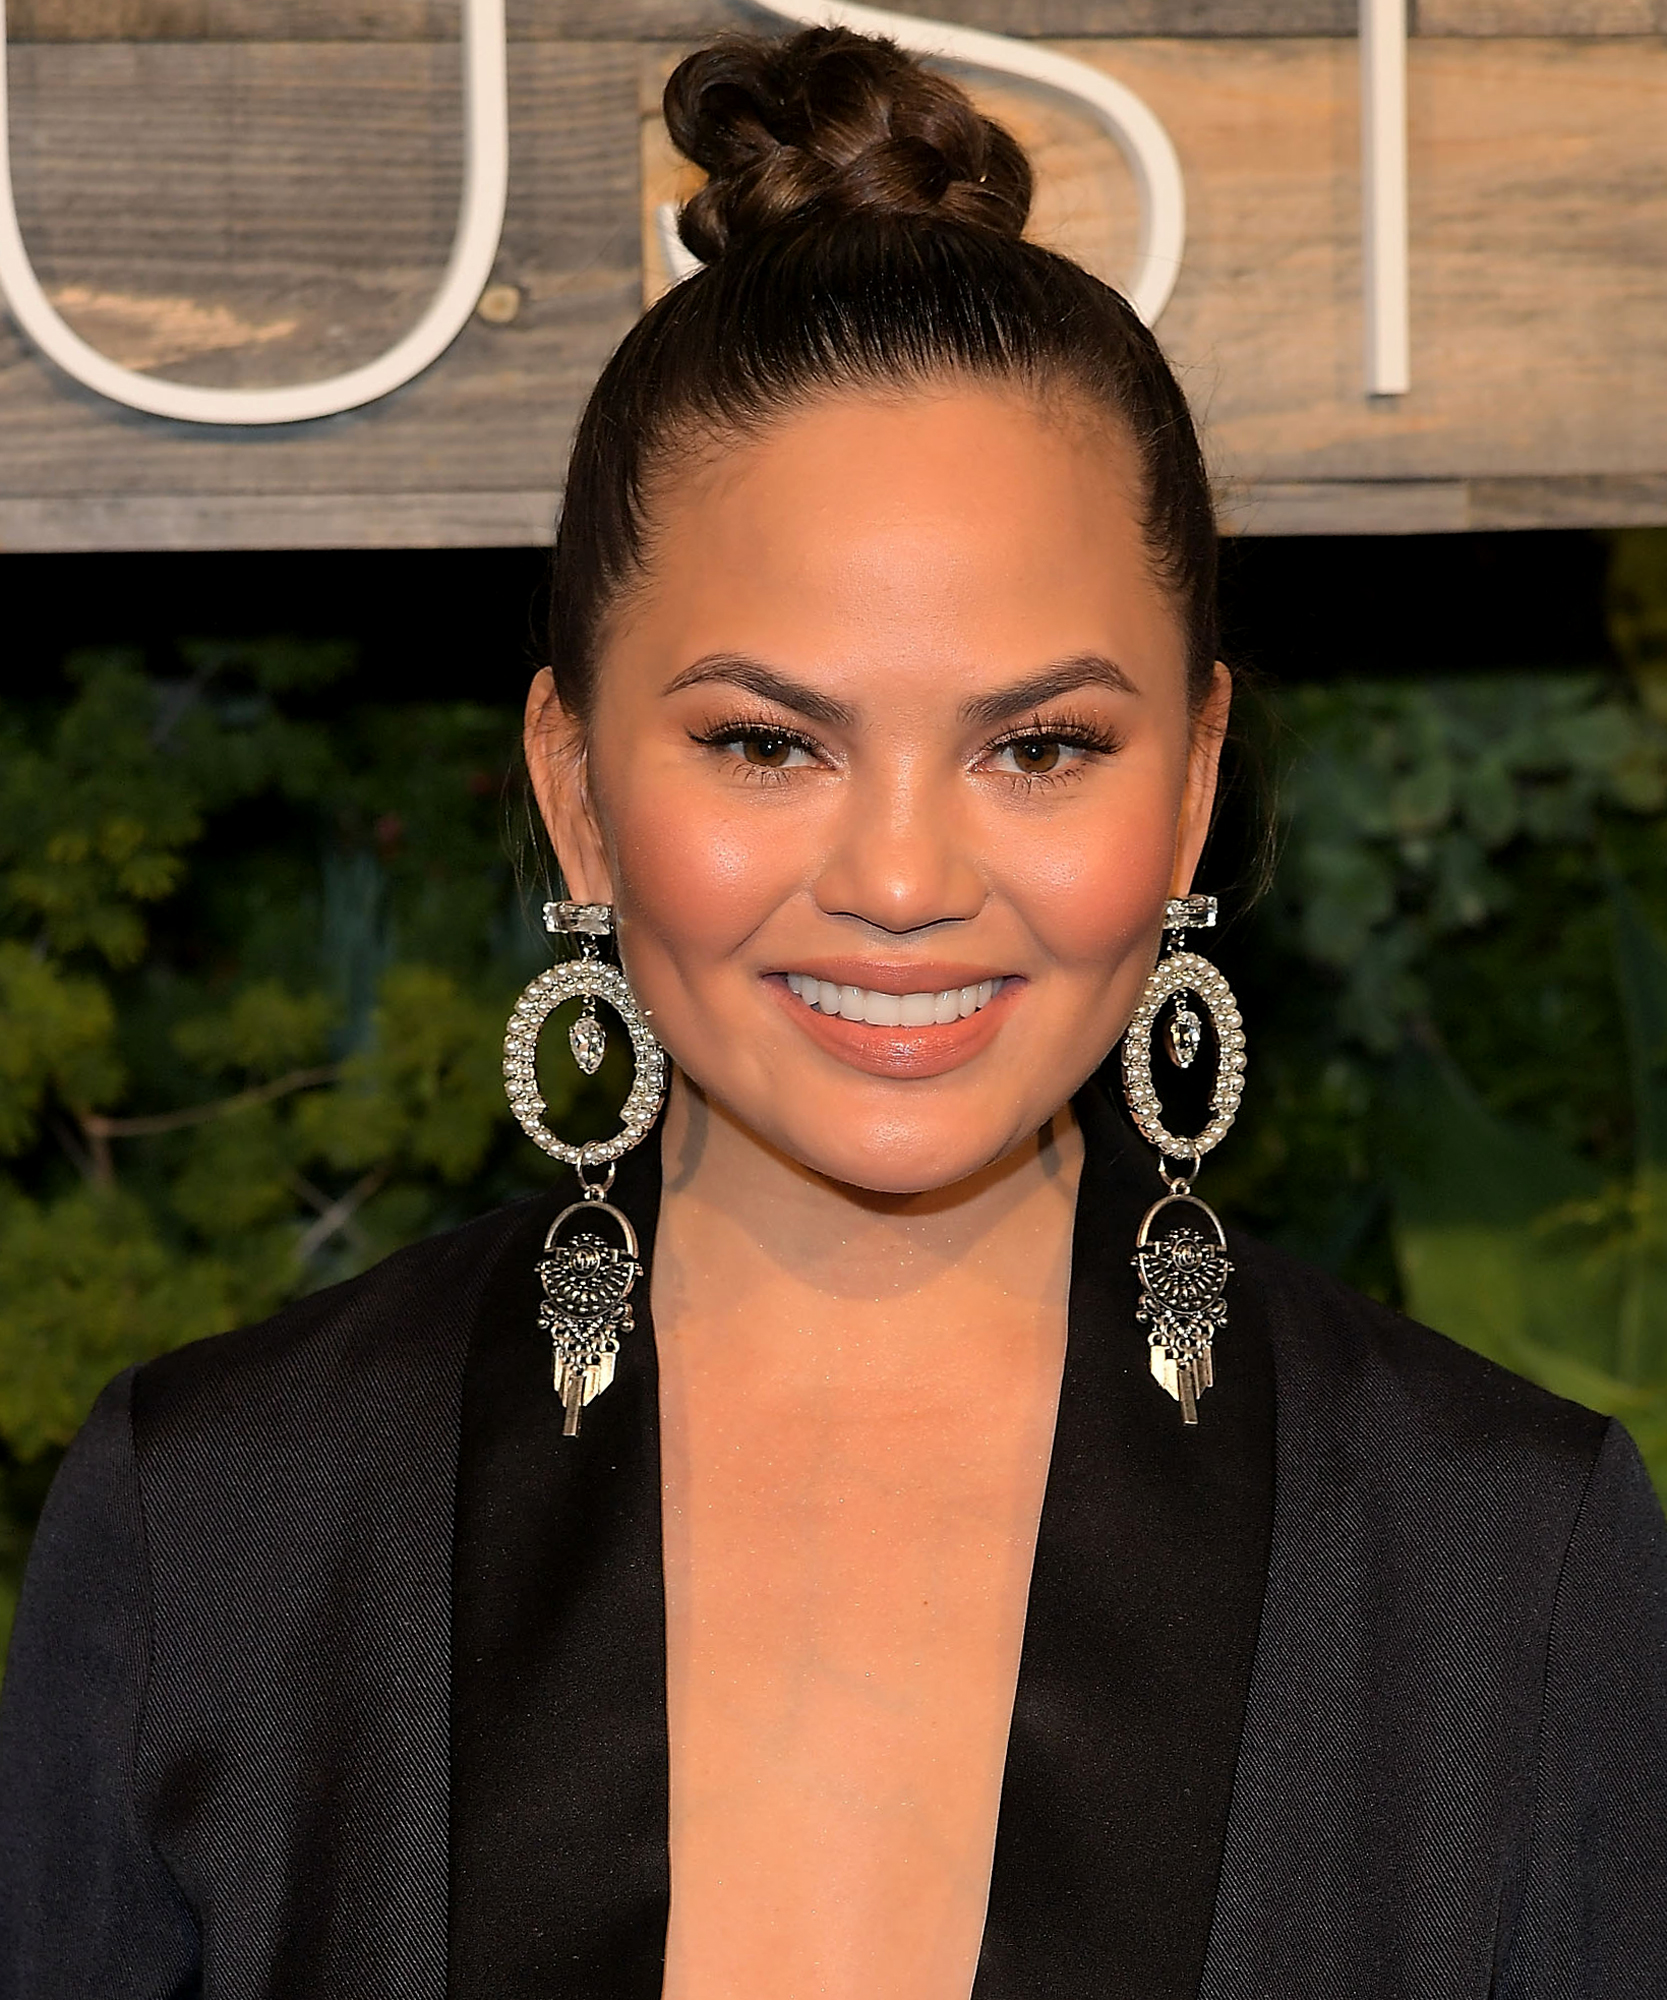 """Chrissy Teigen Describes Her Own Plastic Surgery: """"Everything About Me Is Fake Except My Cheeks"""""""